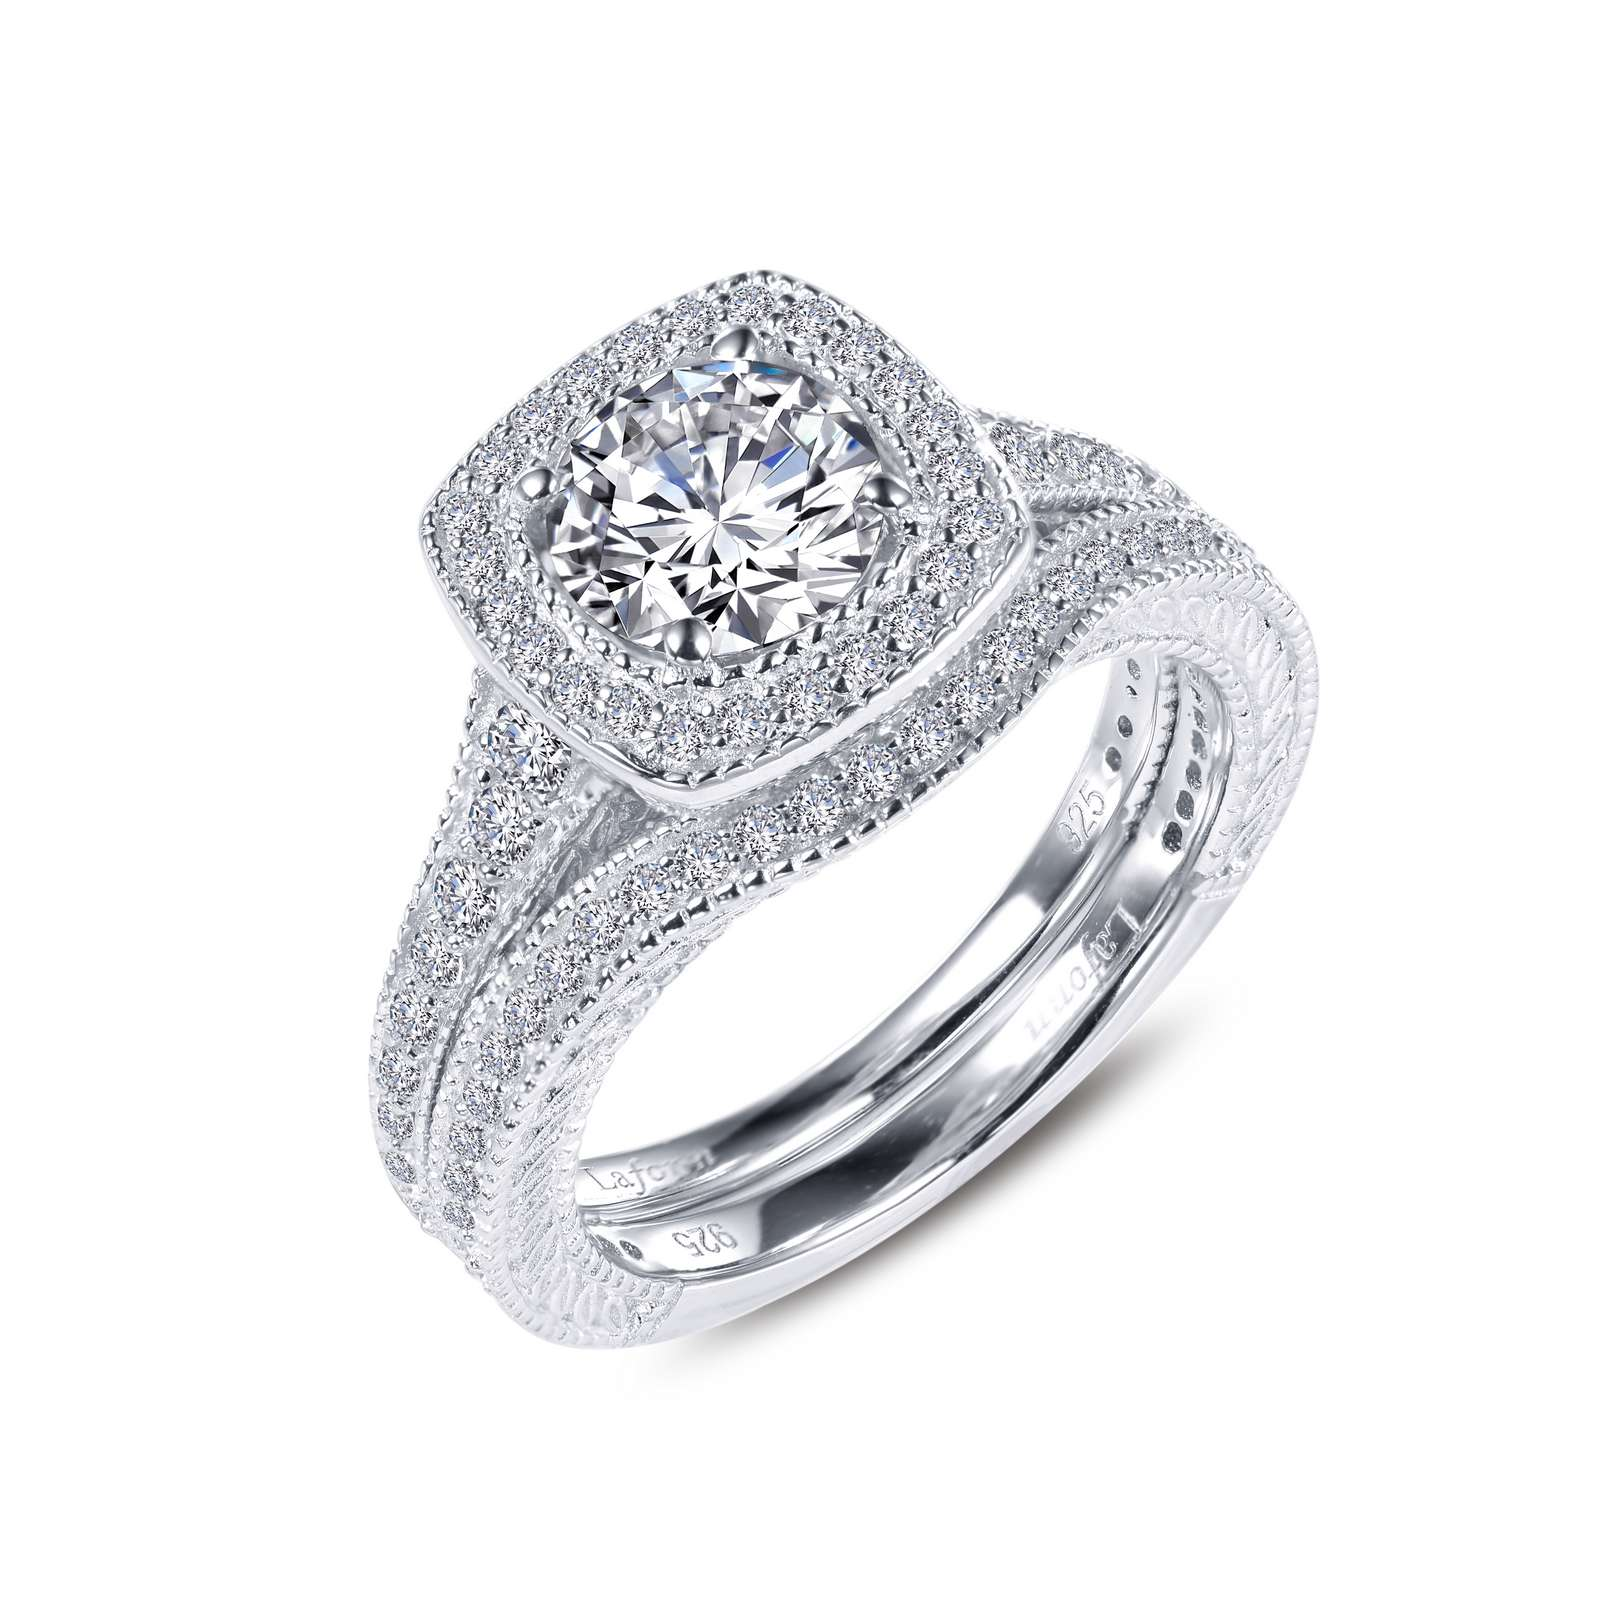 Classic Simulated Diamond Platinum Ring - A timeless classic cushion halo engagement ring with matching band. This wedding set is set with Lafonn's signature Lassaire simulated diamonds in sterling silver bonded with platinum.